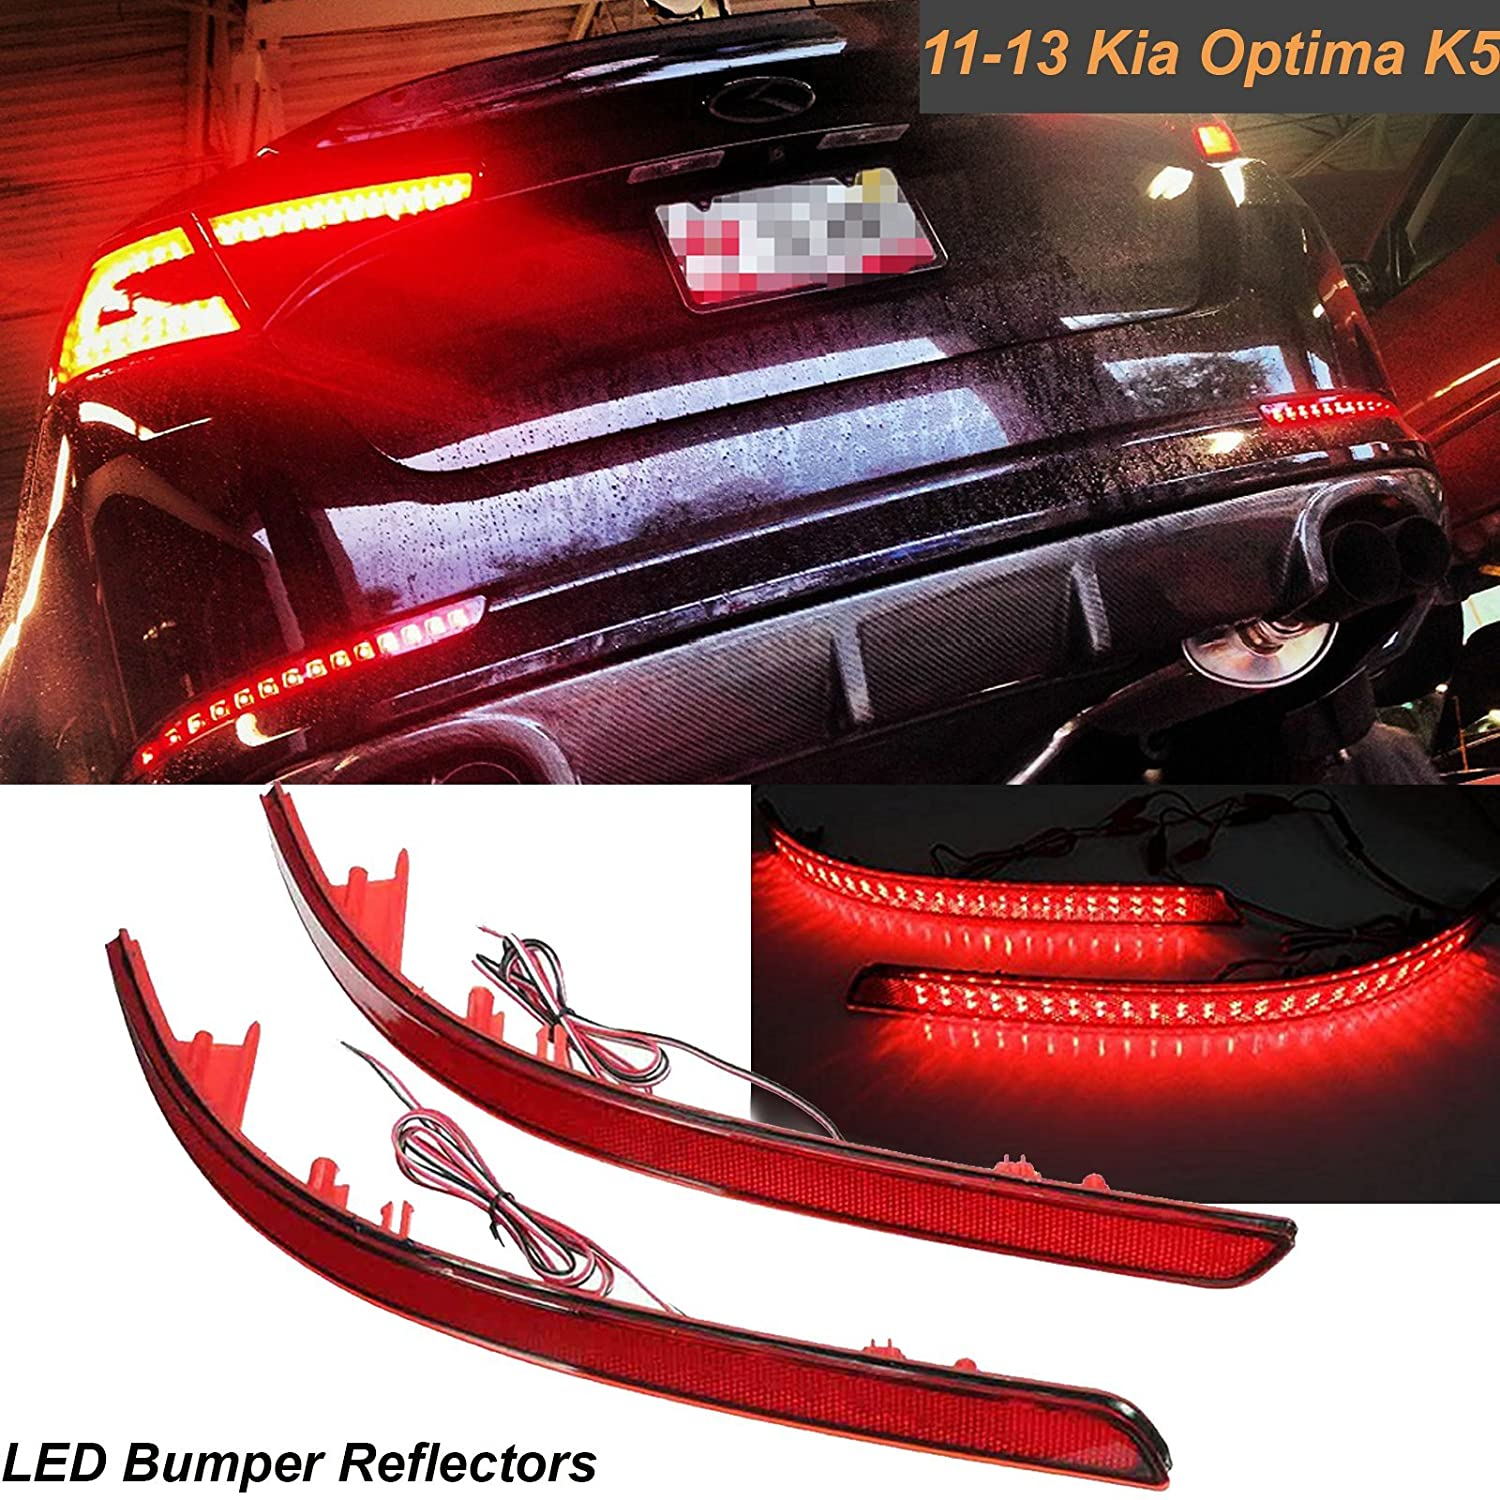 2x Led Brilliant Red Lens Rear Bumper Tail Light Kia Optima Fog Wiring Diagram Reflector Brake Stop Lights For K5 2011 2012 2013 Automotive